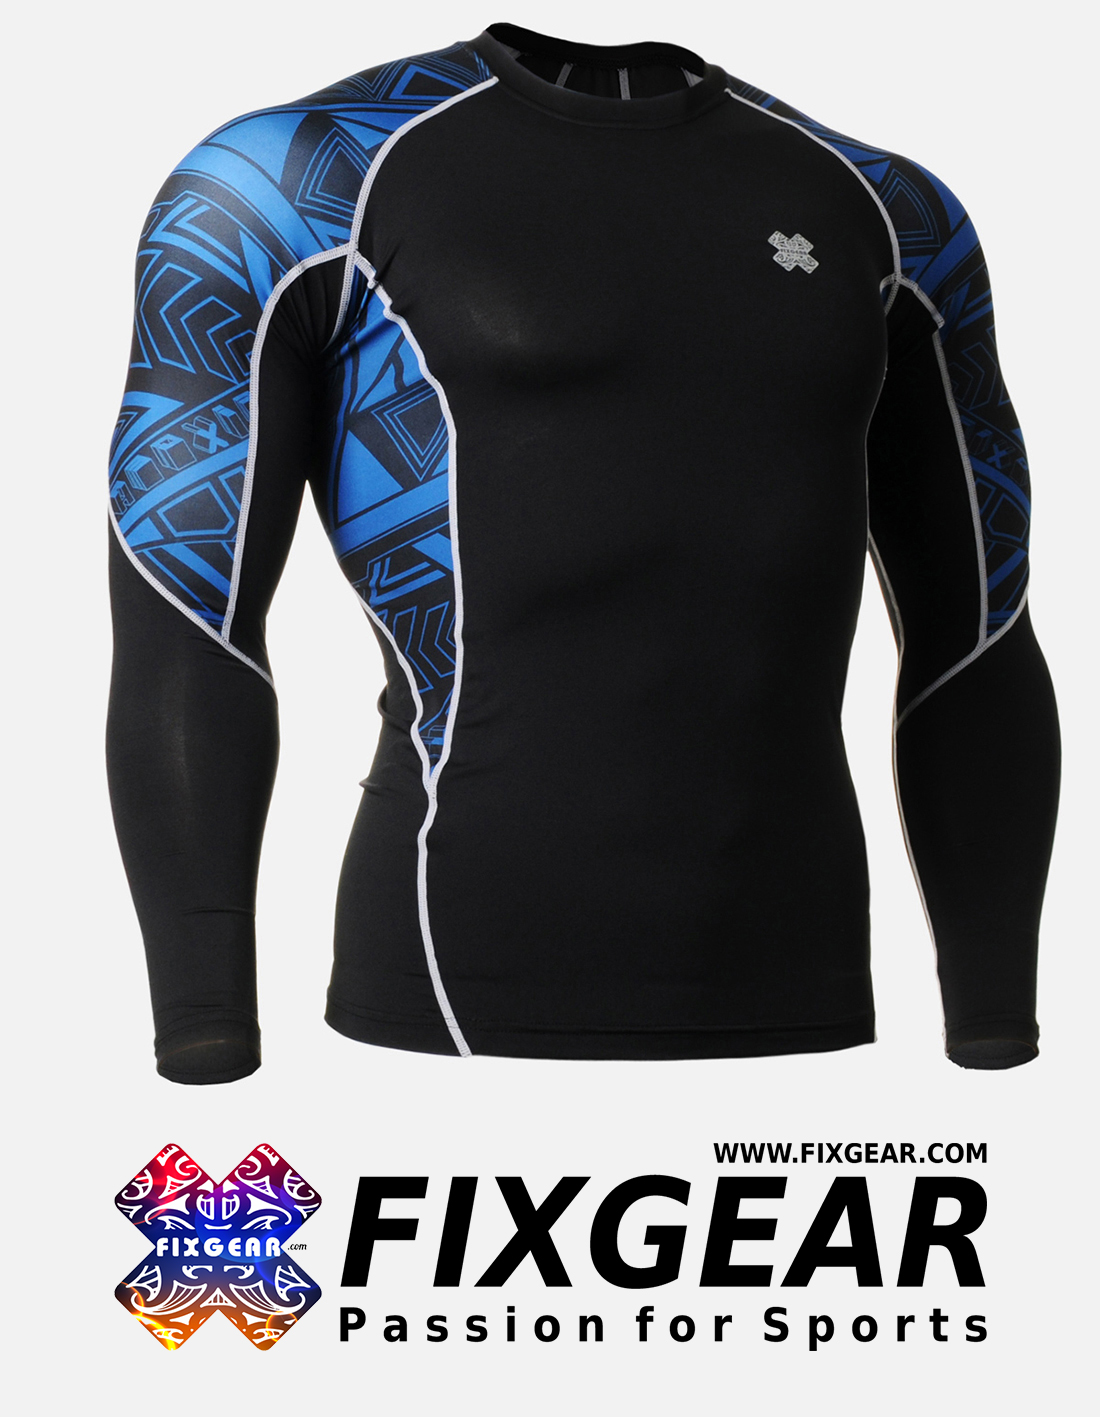 FIXGEAR C2L-B1 Compression Base Layer Shirt